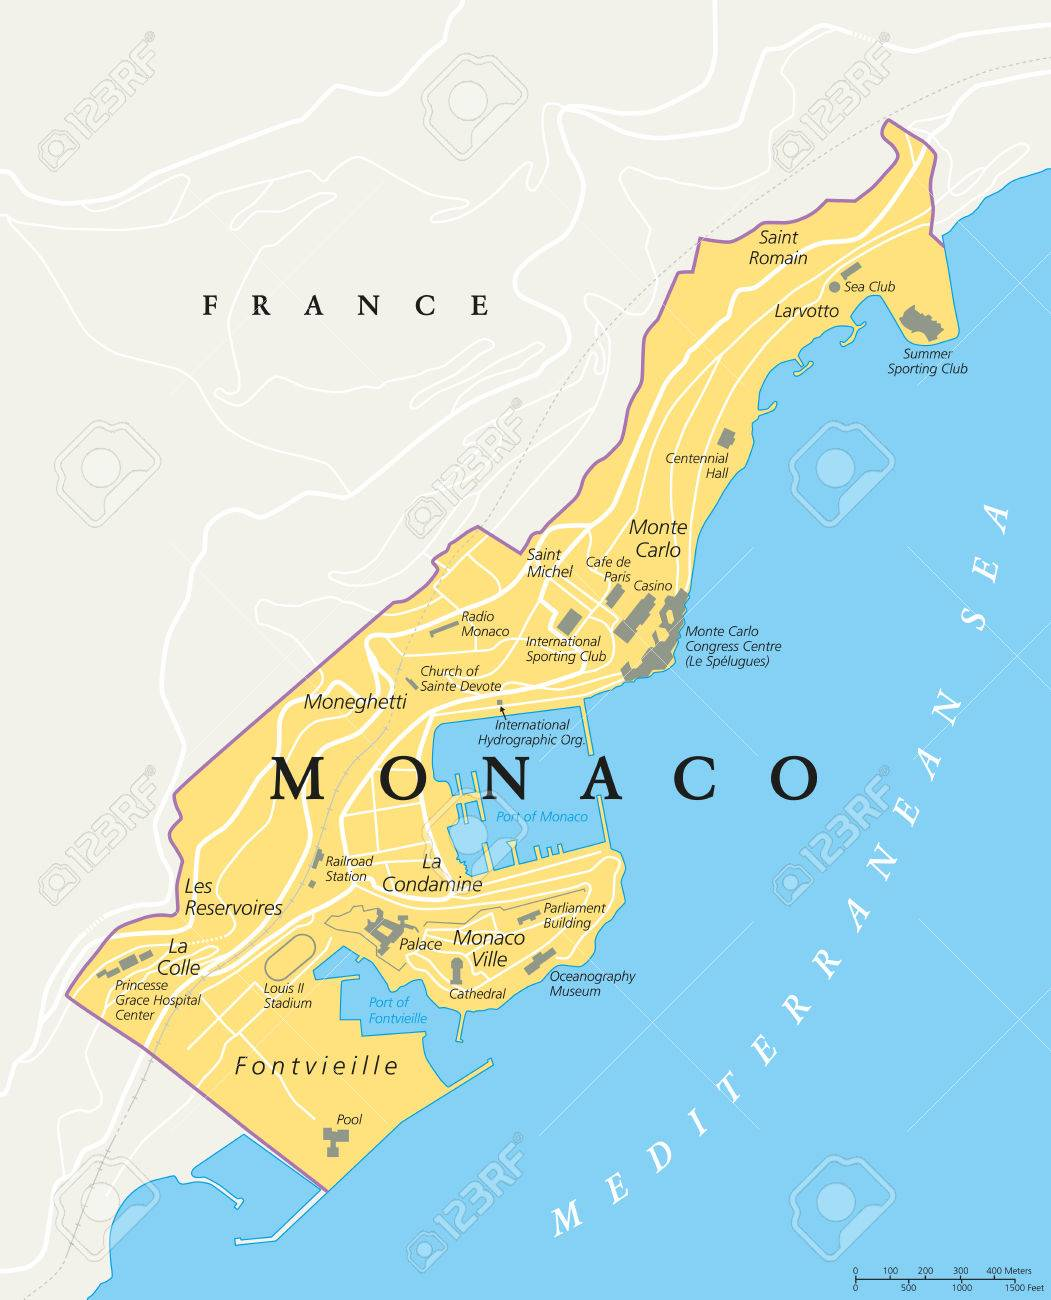 Monaco political map city state in on the french riviera france monaco political map city state in on the french riviera france with national gumiabroncs Gallery